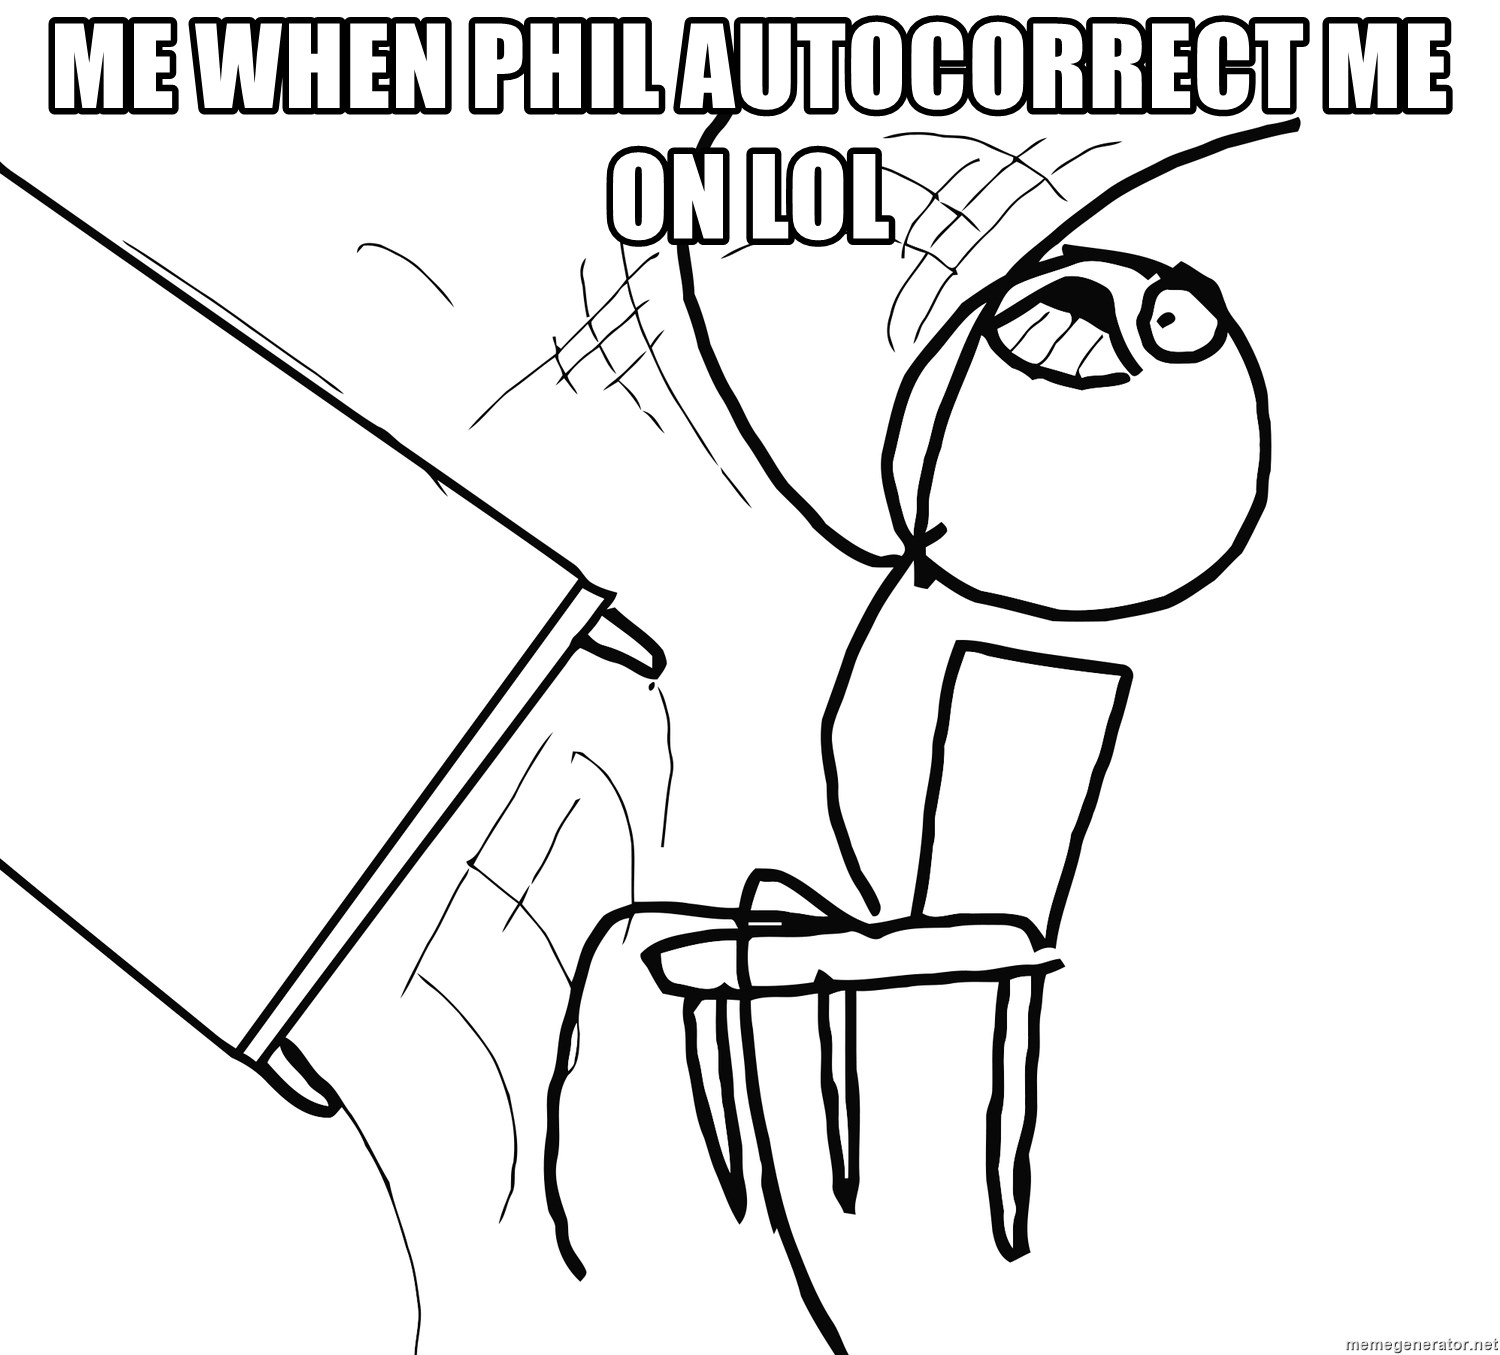 Desk Flip Rage Guy - me when phil autocorrect me on lol